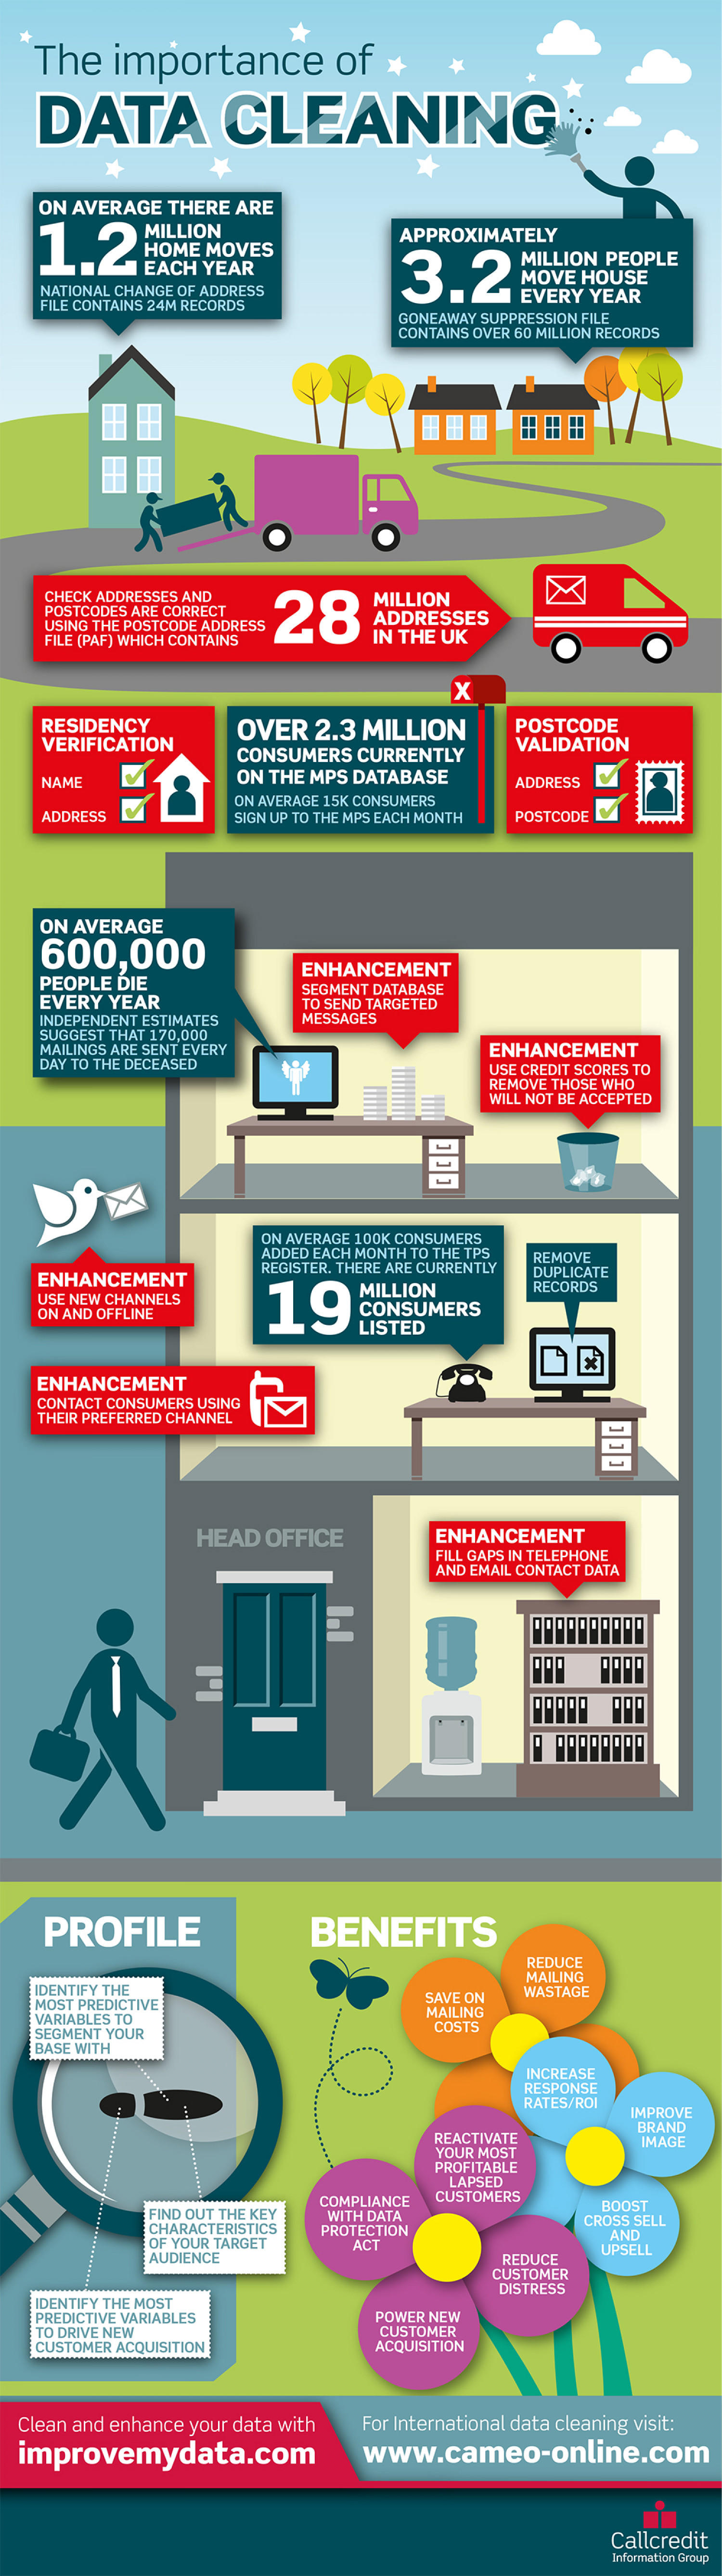 The importance of Data Cleaning Infographic